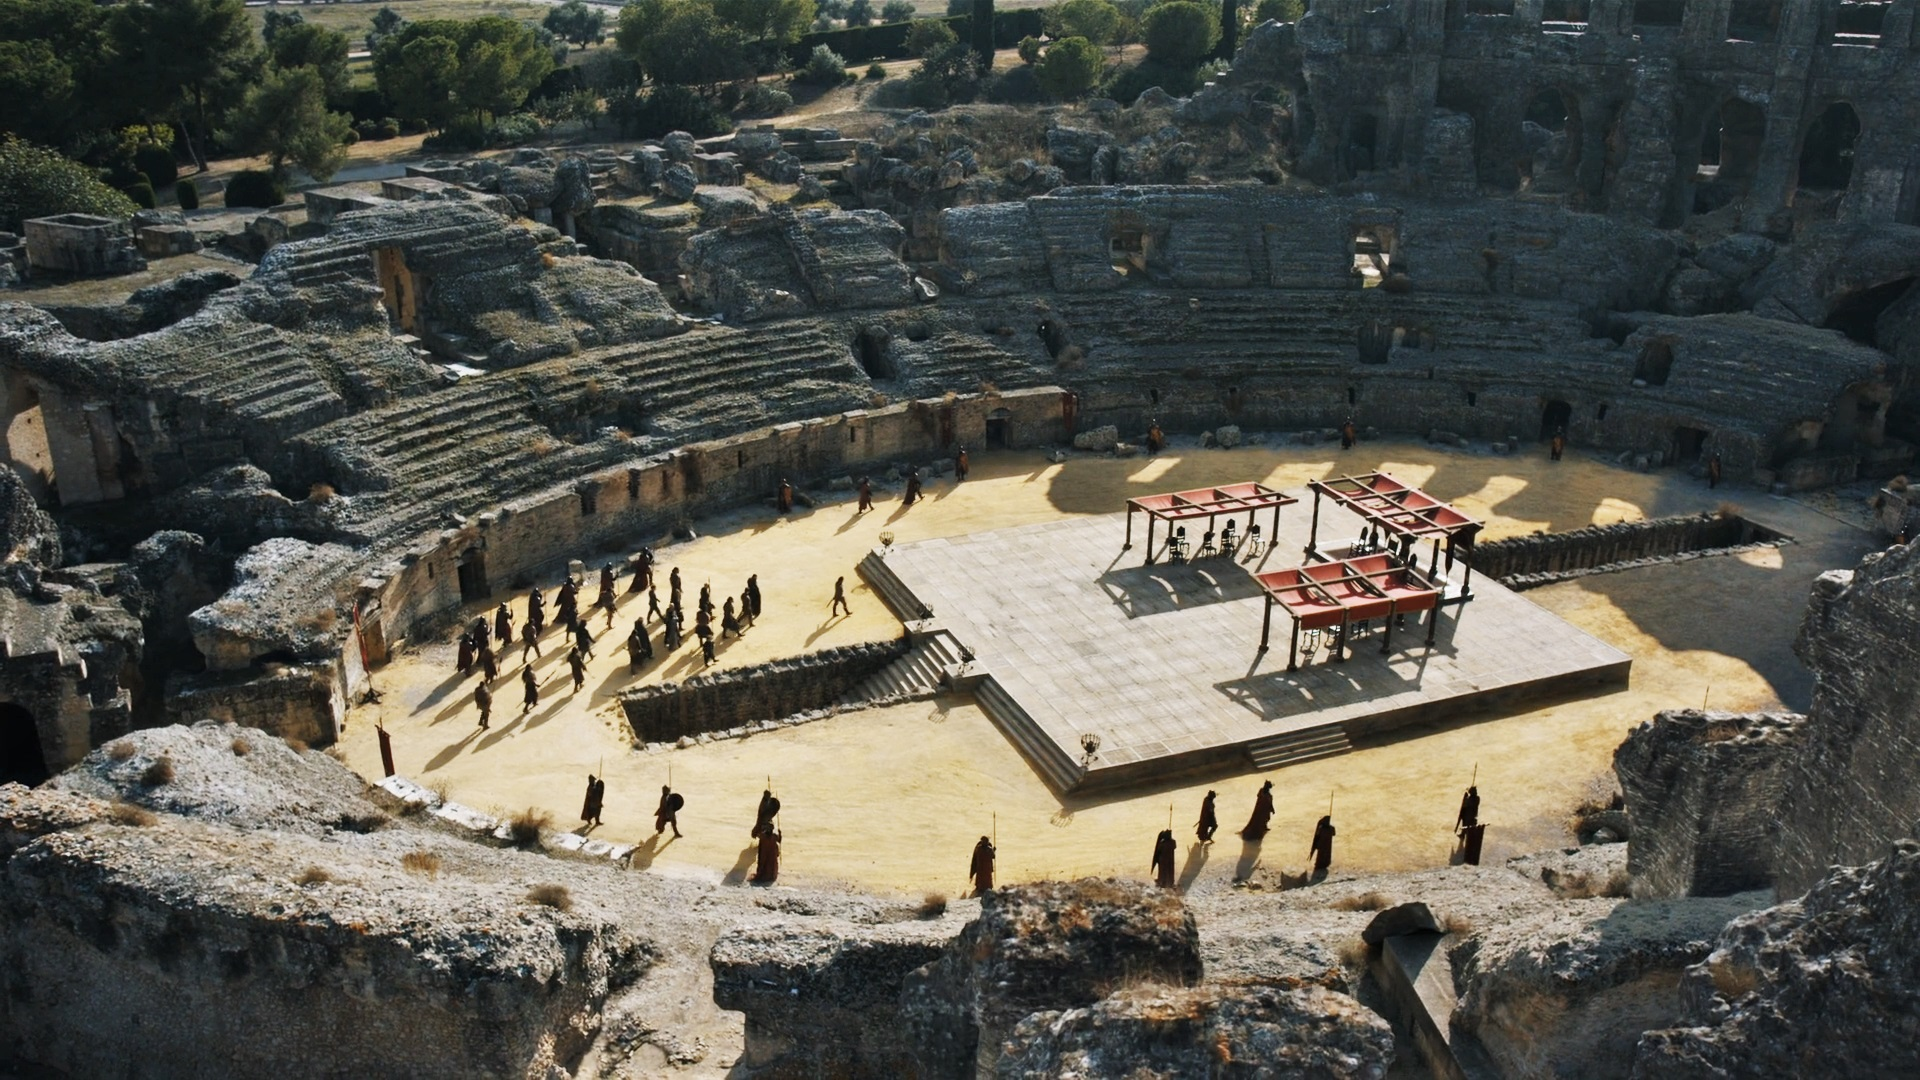 The podium or dais was the focus of the Dragonpit scene in season seven